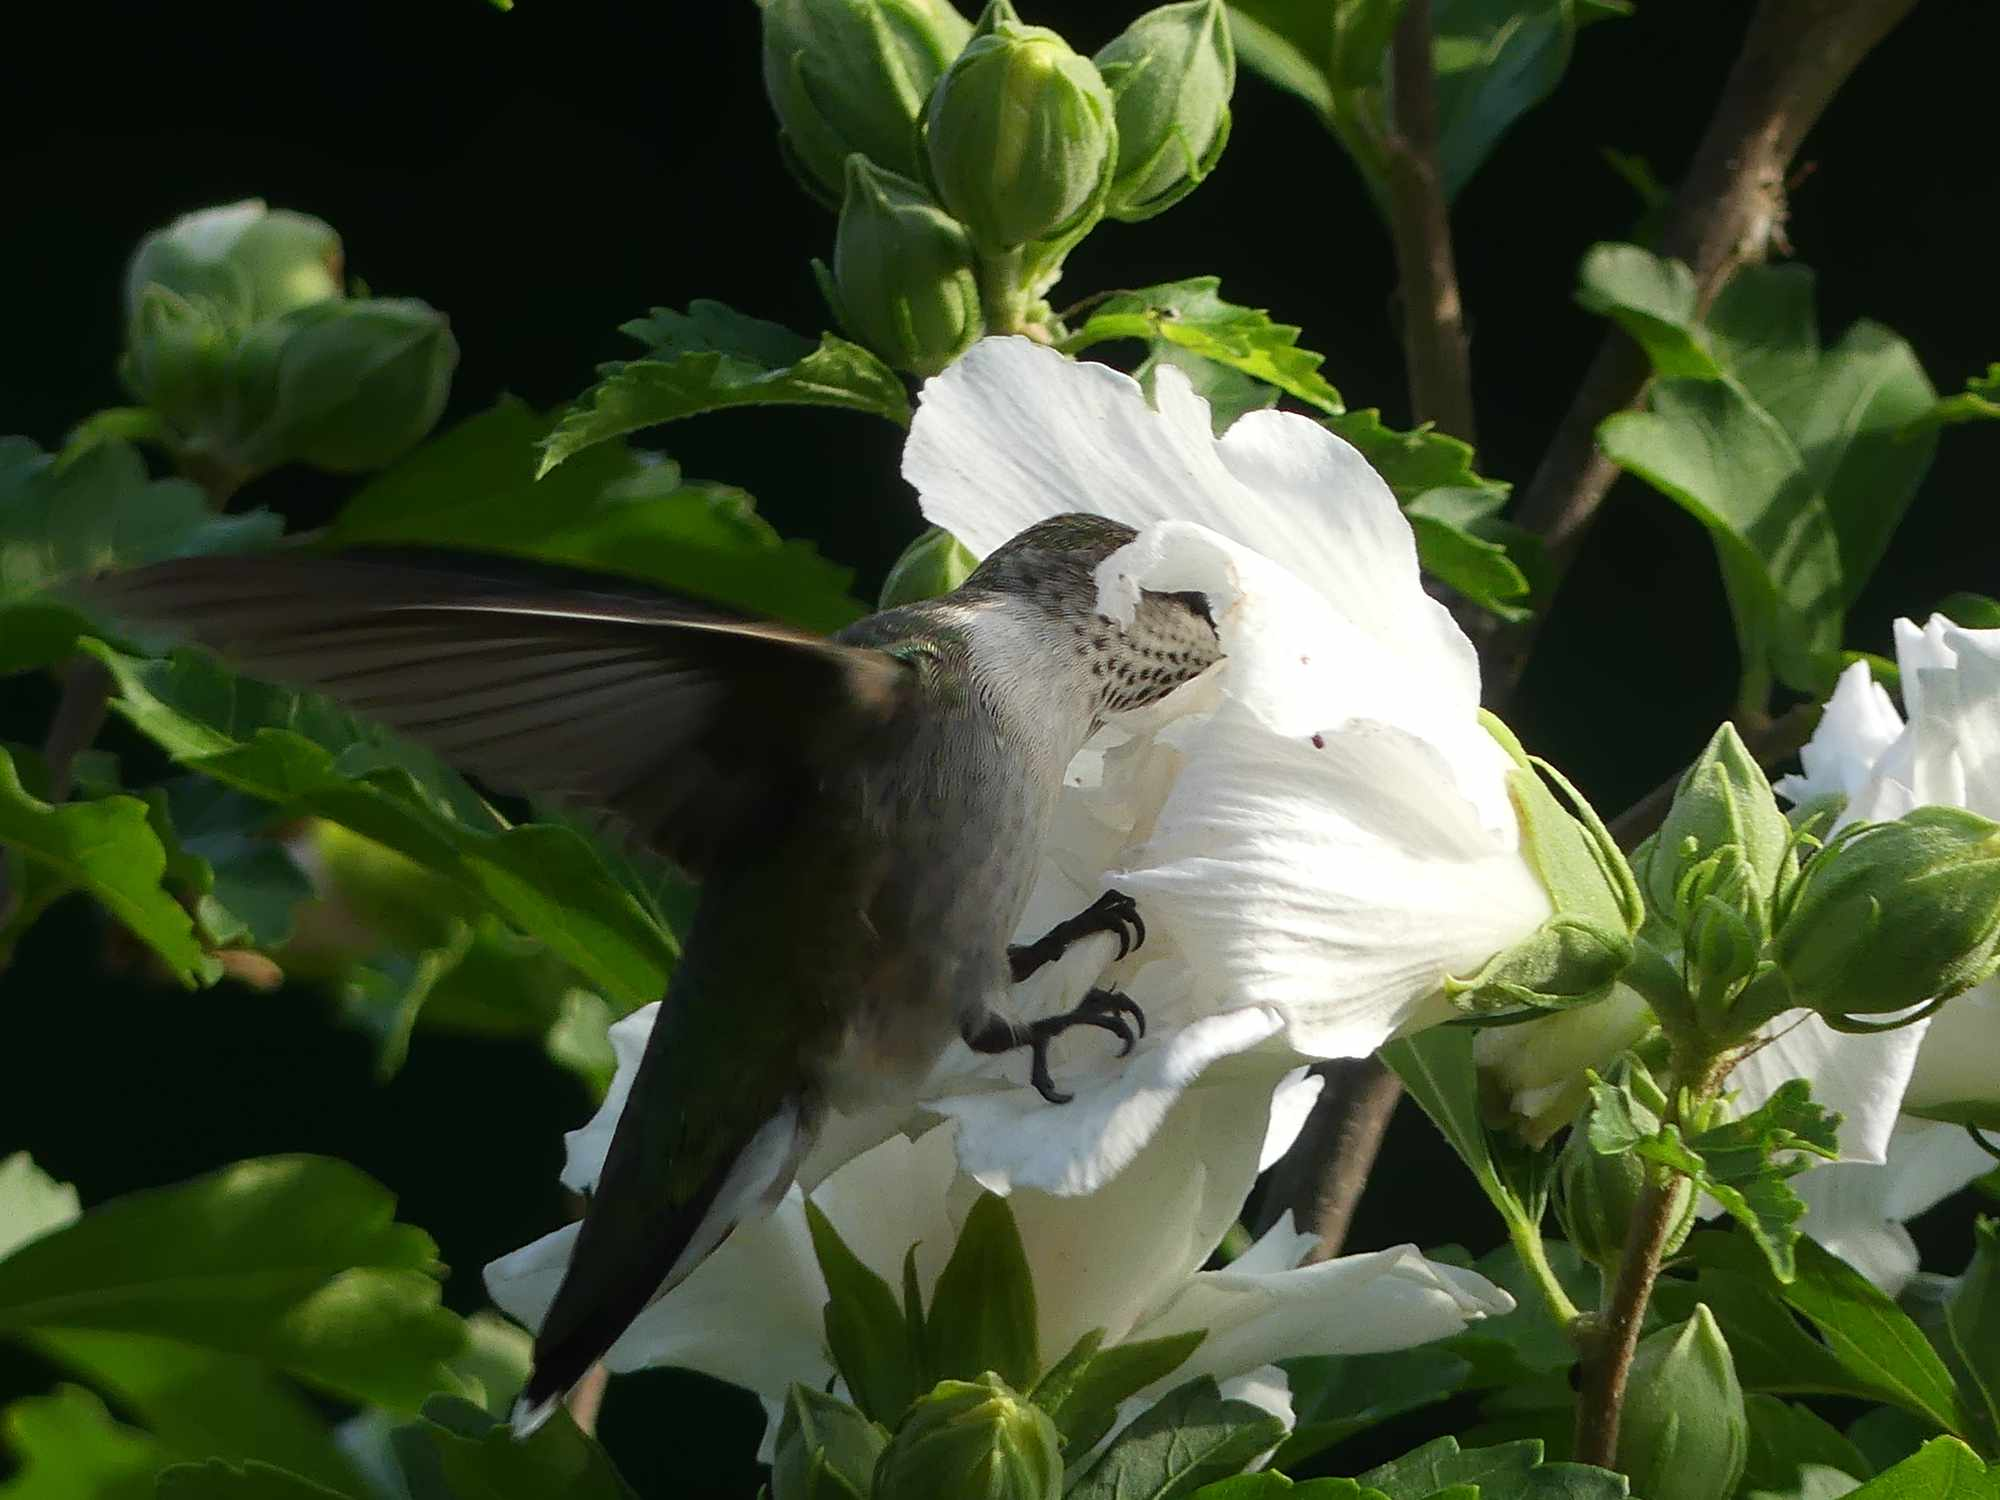 'White Chiffon' rose of Sharon being visited by a hummingbird